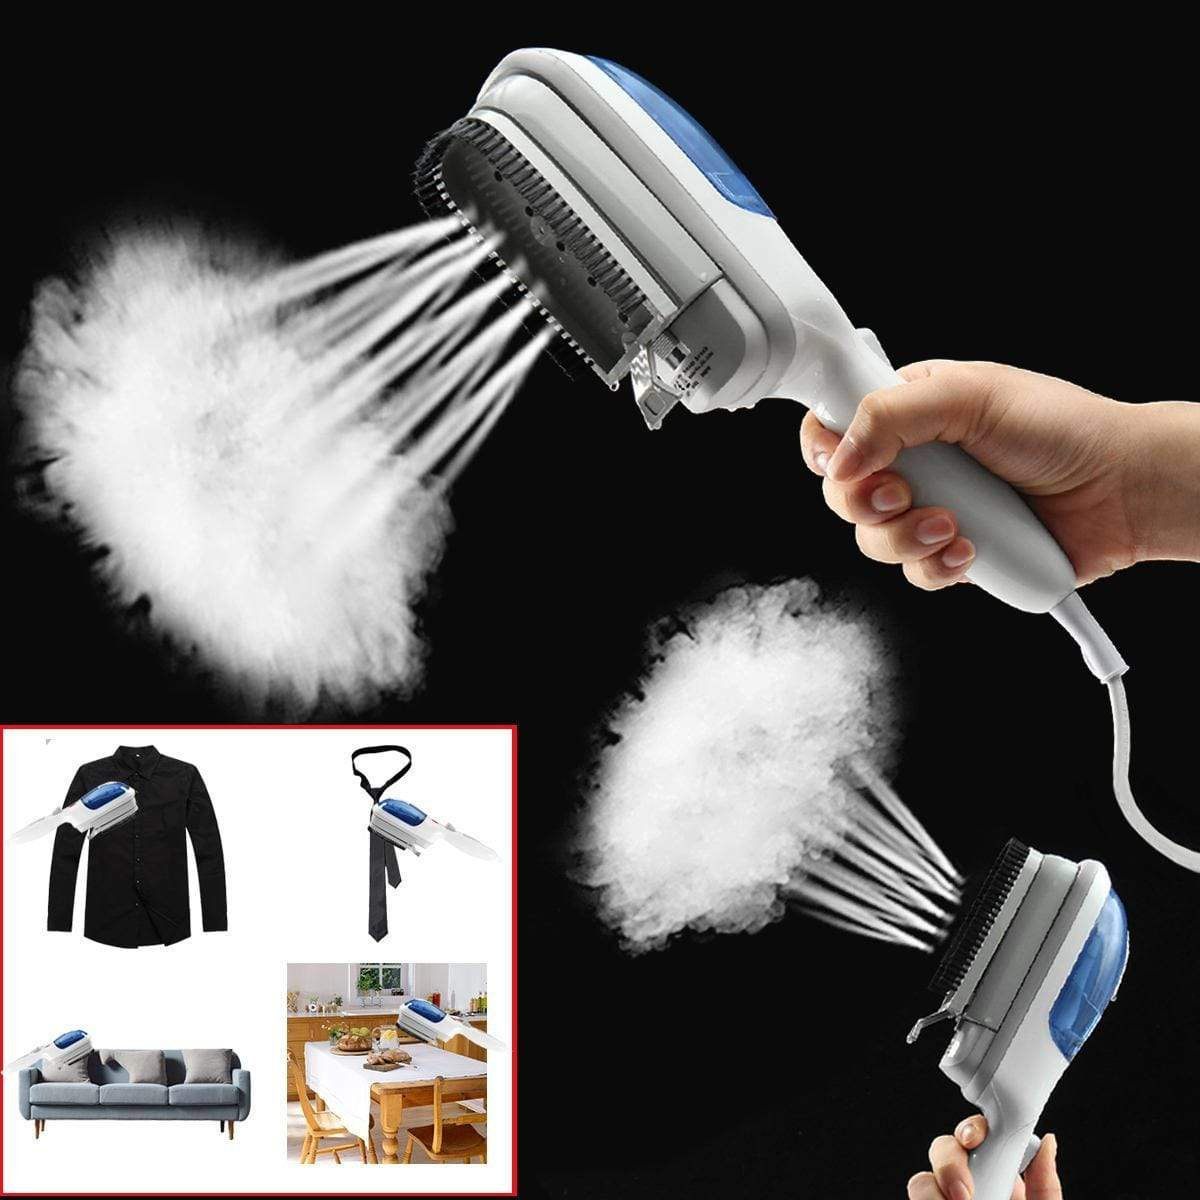 Portable Steam Iron Trendy Joys